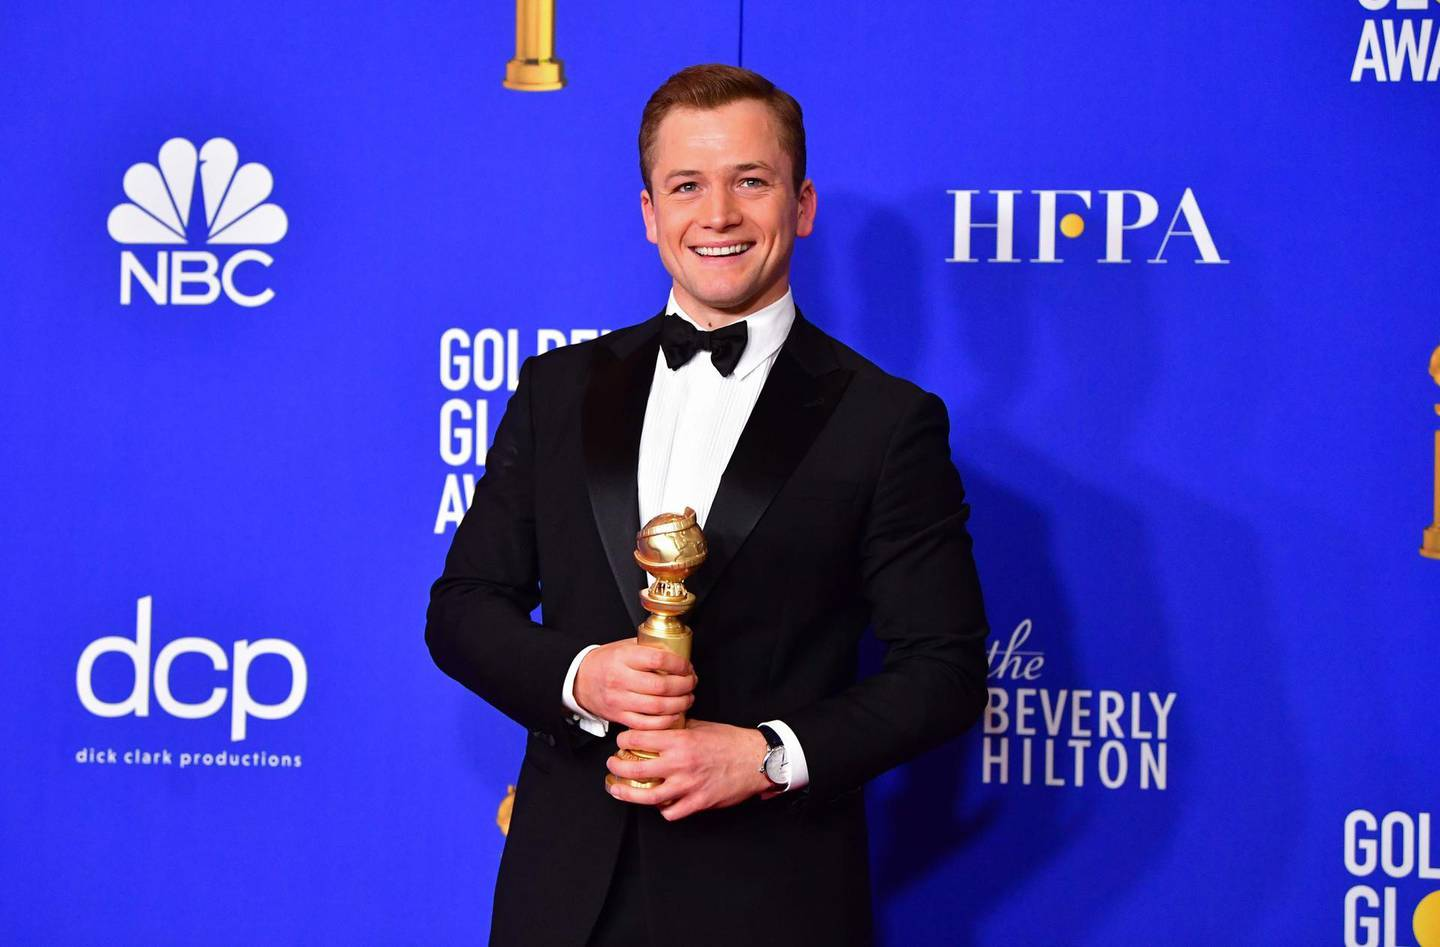 Actor Taron Egerton poses in the press room with the award for best Best Performance by an Actor in a Motion Picture - Musical or Comedy during the 77th annual Golden Globe Awards on January 5, 2020, at The Beverly Hilton hotel in Beverly Hills, California. / AFP / FREDERIC J. BROWN